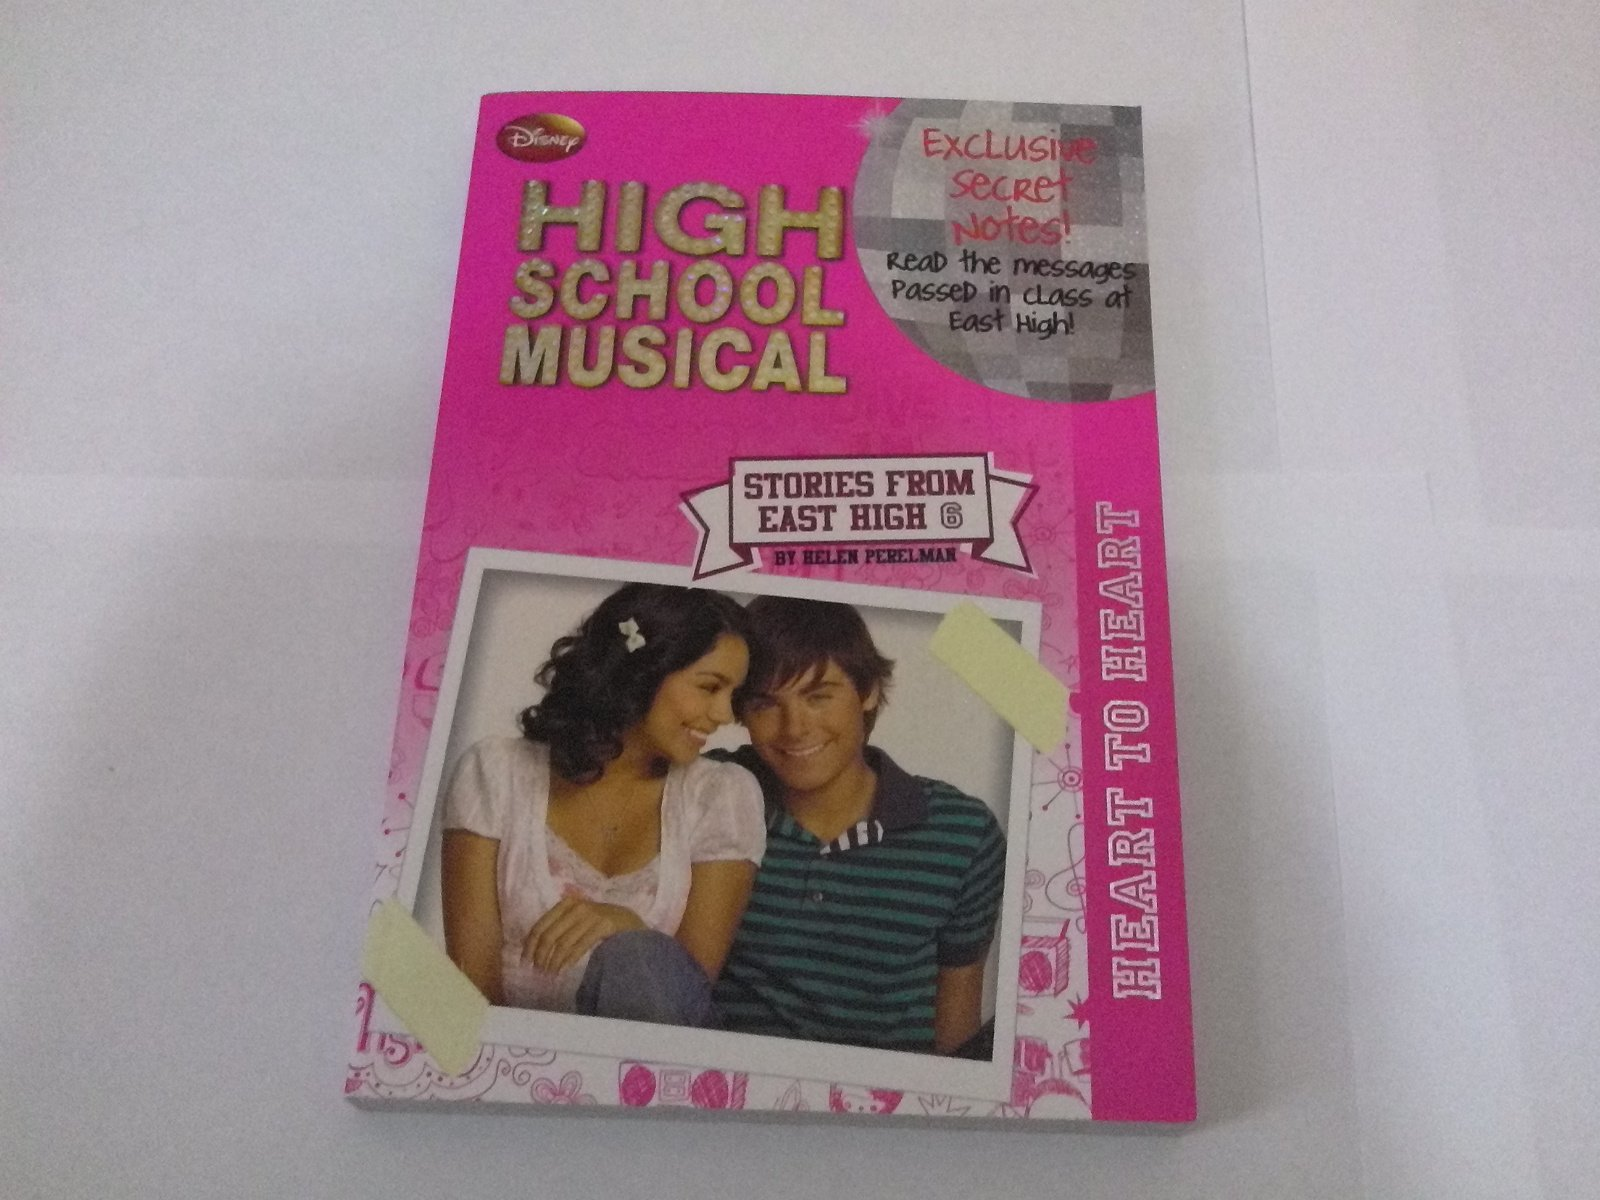 Heart to Heart, Vol. 6 (High School Musical, Stories from East High): Heart to Heart Bk. 6 PDF